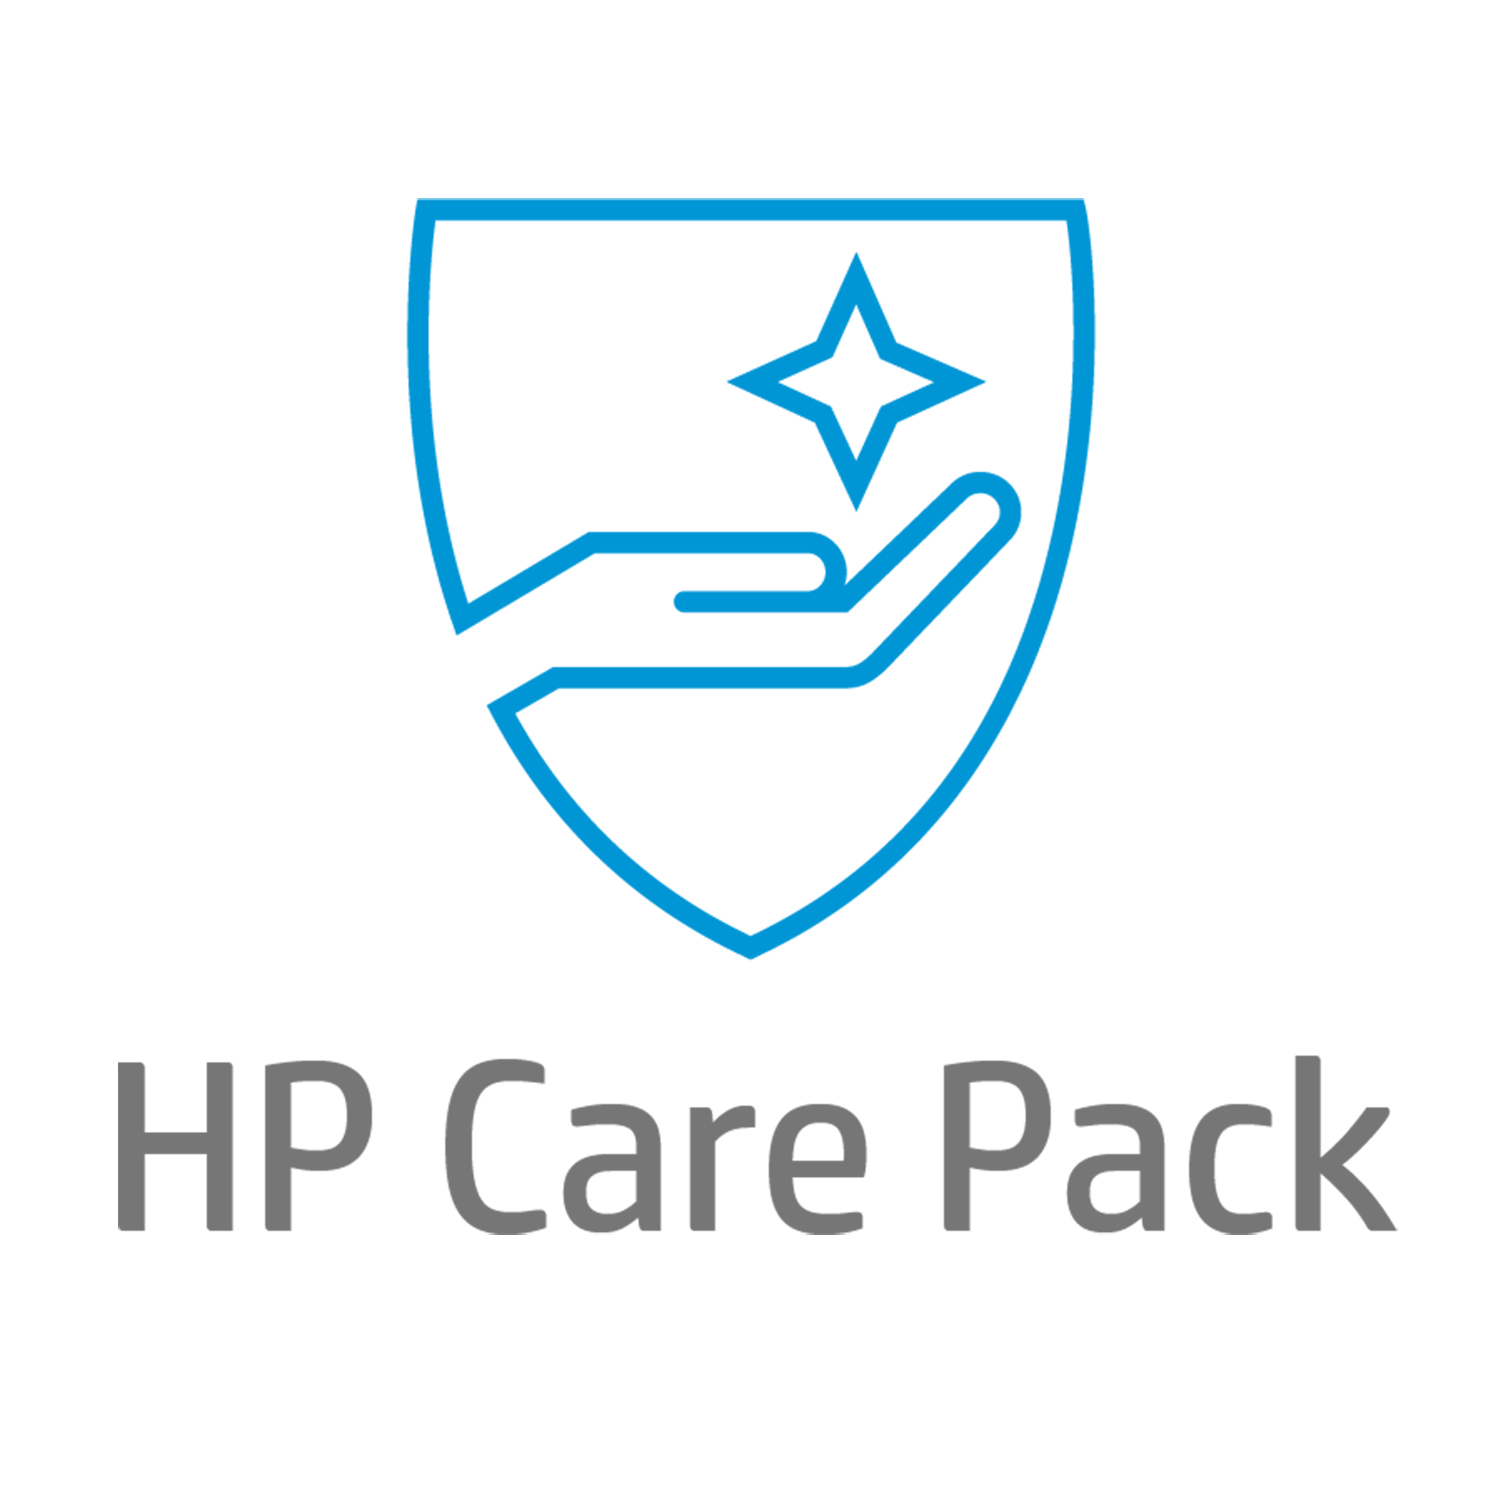 HP 1YR PW PICKUP RET COMM NB ONLY SVC